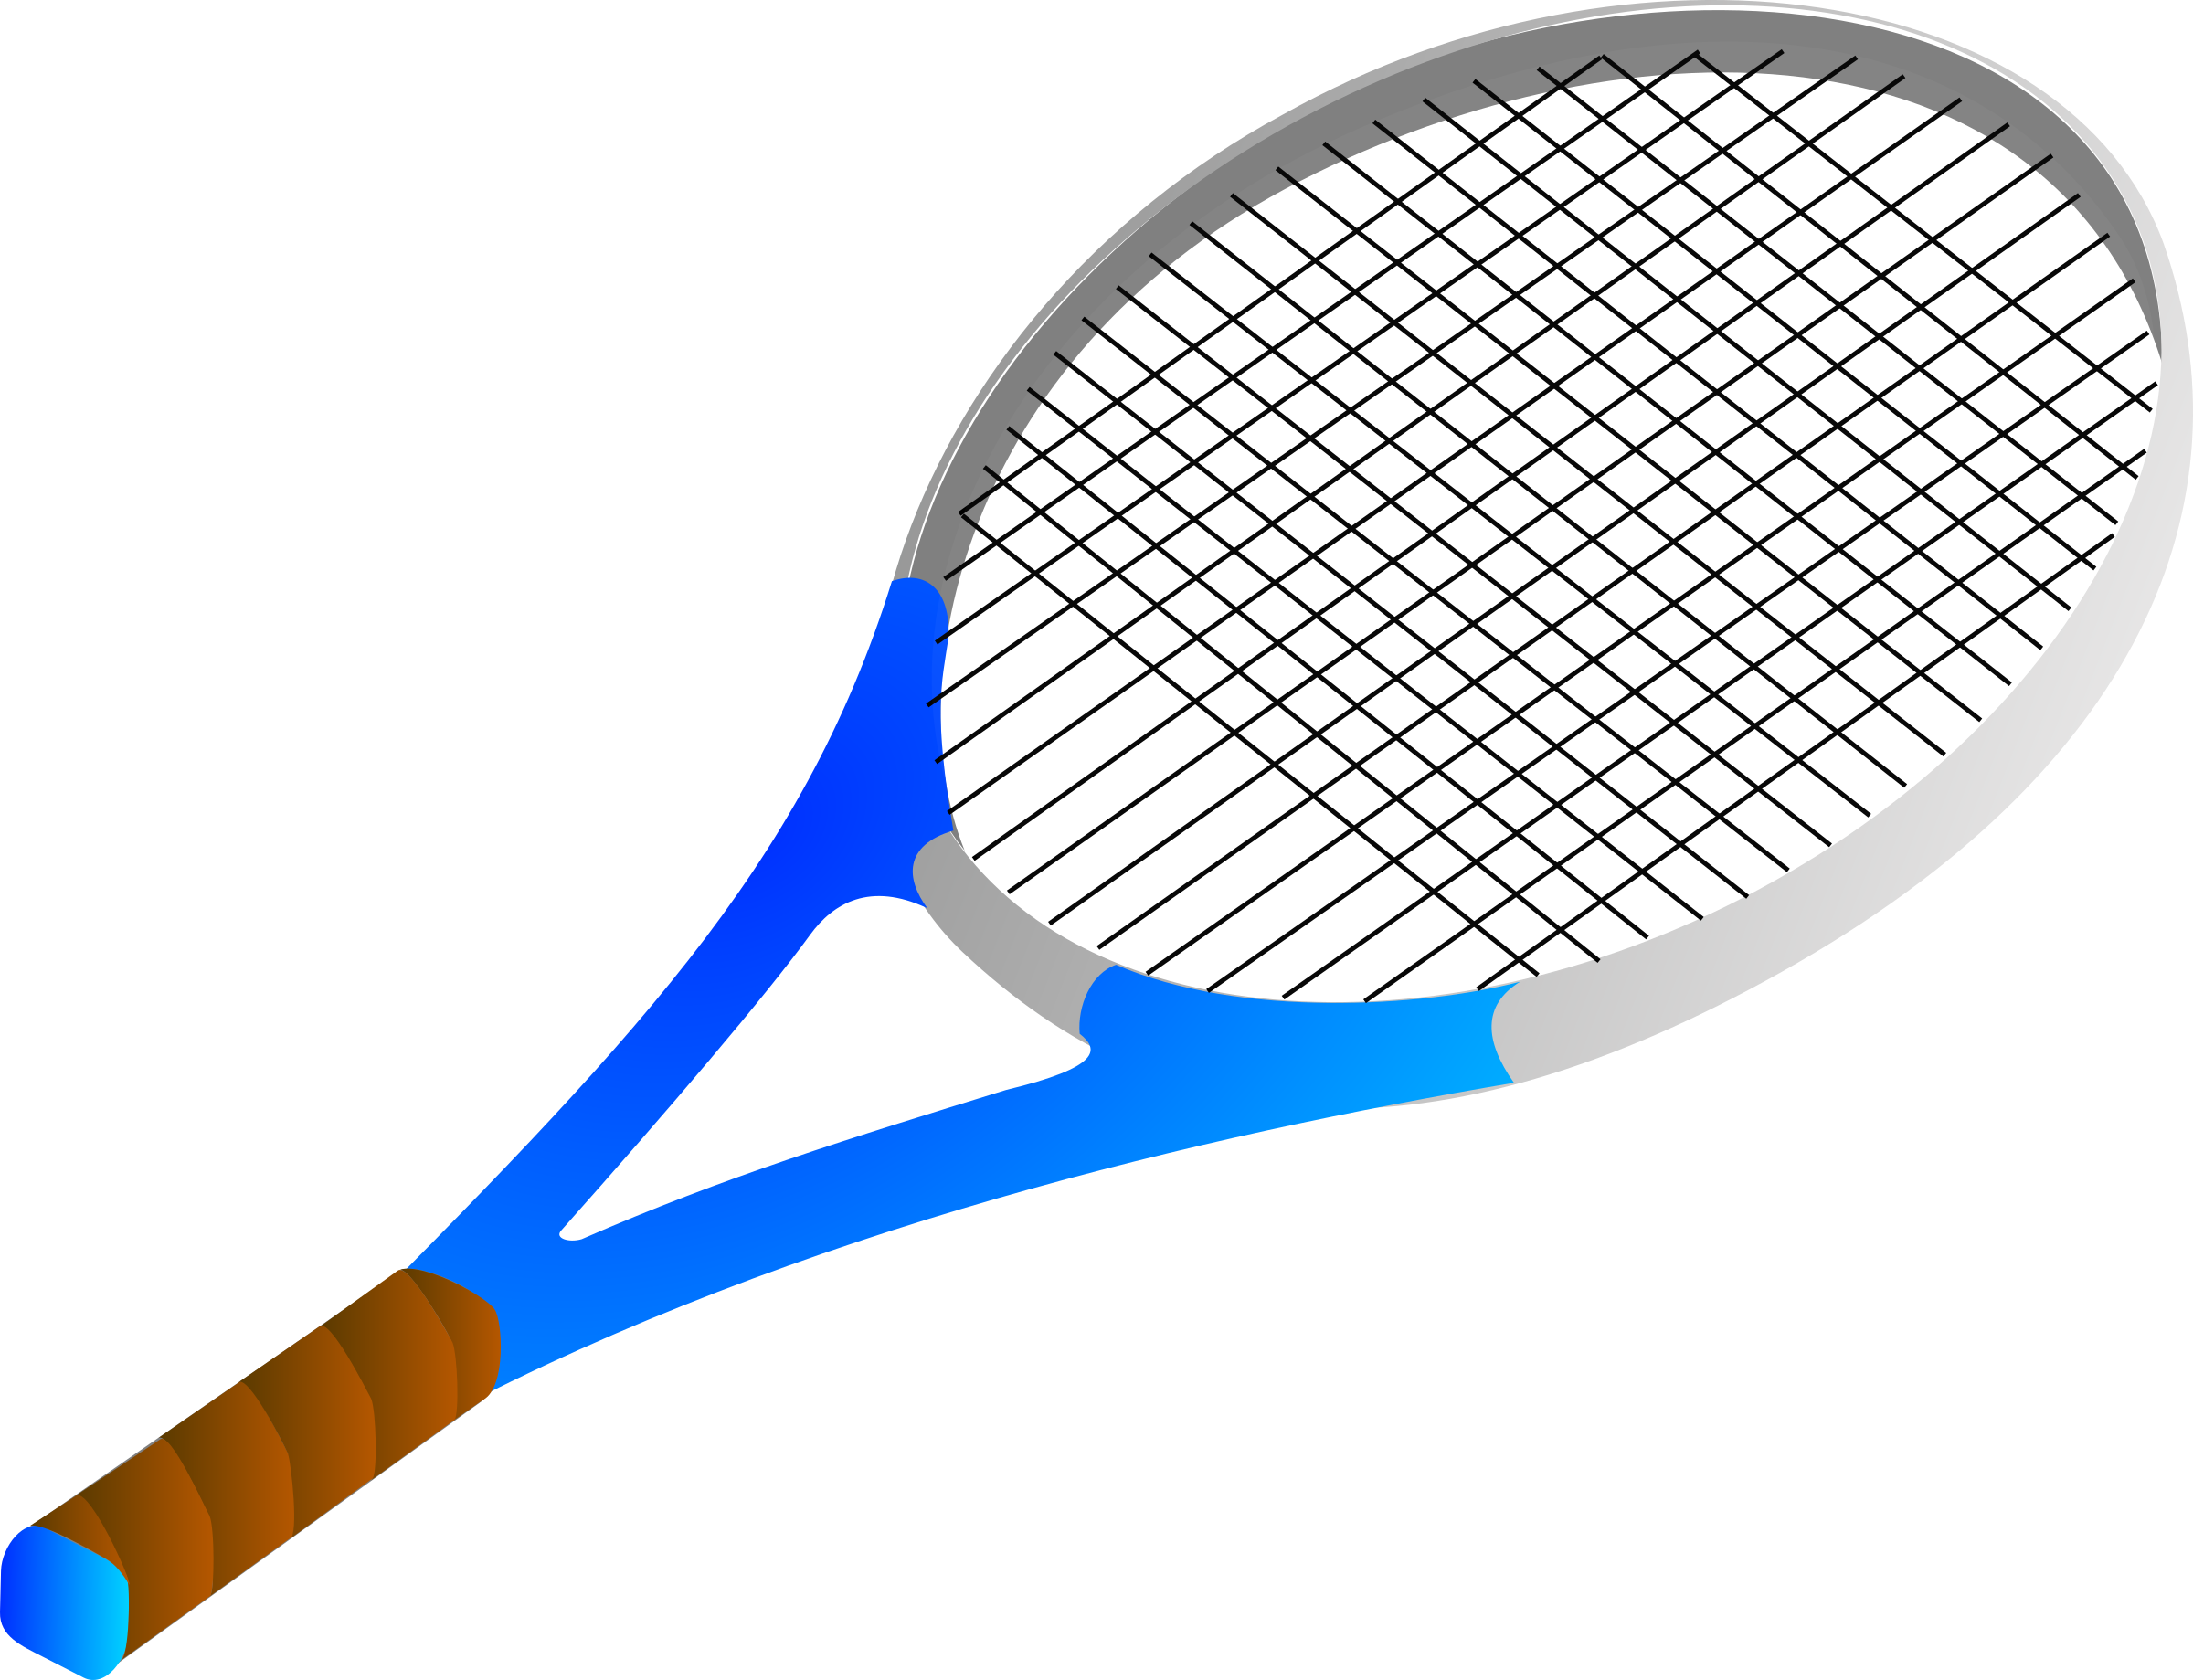 Racket clipart pink tennis racket. Icons png free and